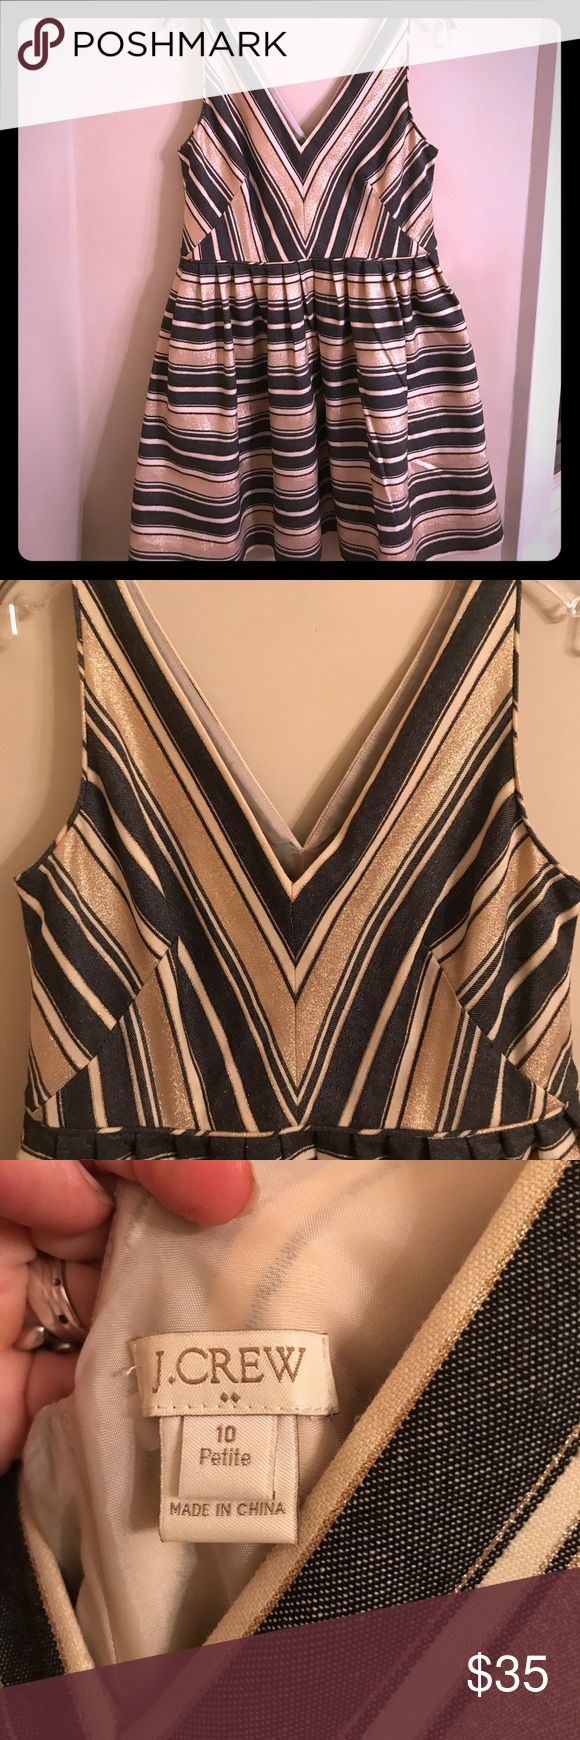 JCrew striped charcoal and gold cocktail dress Excellent condition, worn once to a dance. Alternating wide and thin ribbon weave striped of charcoal and gold. Deep vees in front and back. A stunner. 10 petite, but fits a regular 4-6 with a short waist perfectly. J. Crew Dresses Midi